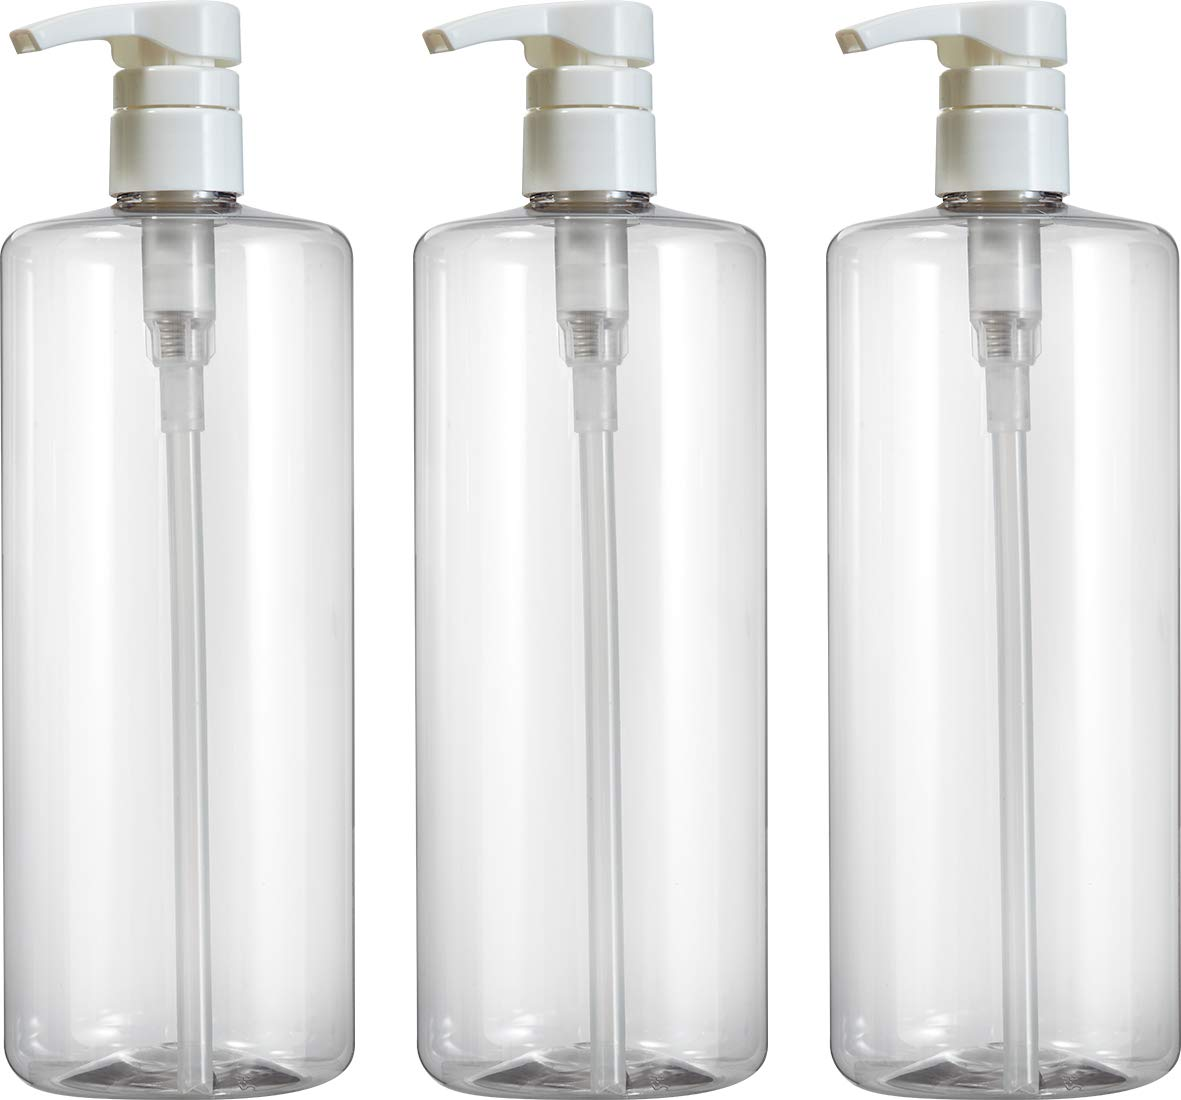 Empty Shampoo Bottles with White Lotion Pumps, Large 1 Liter/32 ounce Refillable Dispensing Containers for Conditioner, Body Wash, Hair Gel, Liquid Hand Soap, DIY Projects and Massage Lotion's (PK 3)